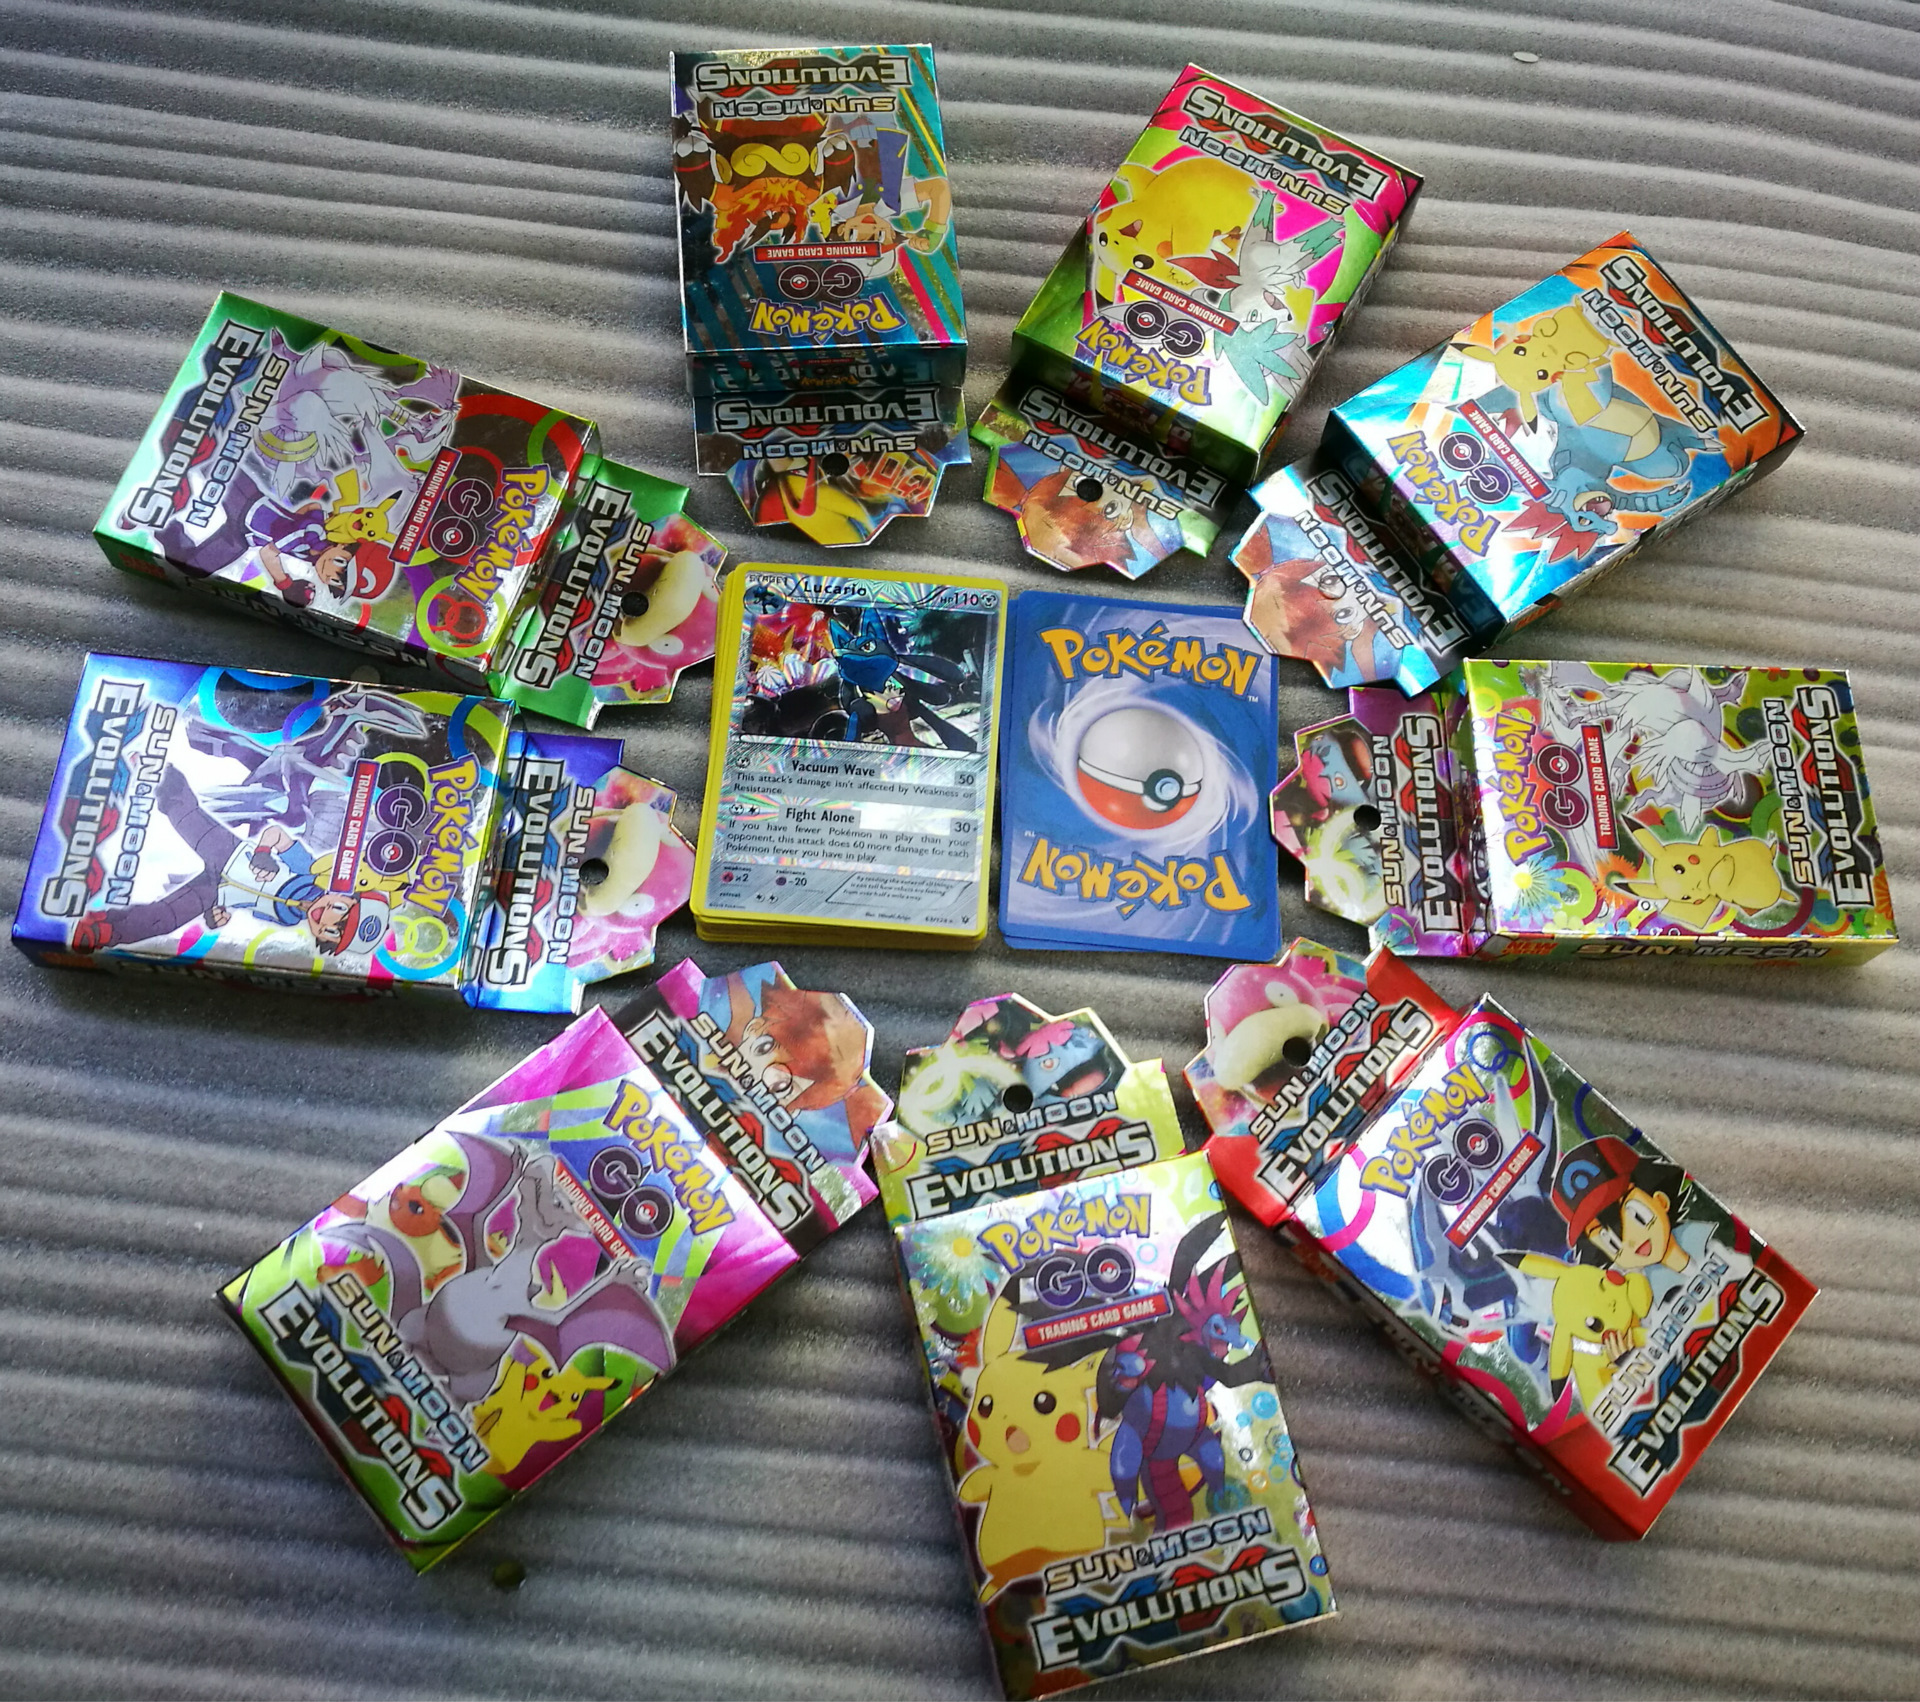 26pcs TAKARA TOMY Pet Pokemon Cards The Newest Style In 2019 Pokemon Card The Toy Of Children